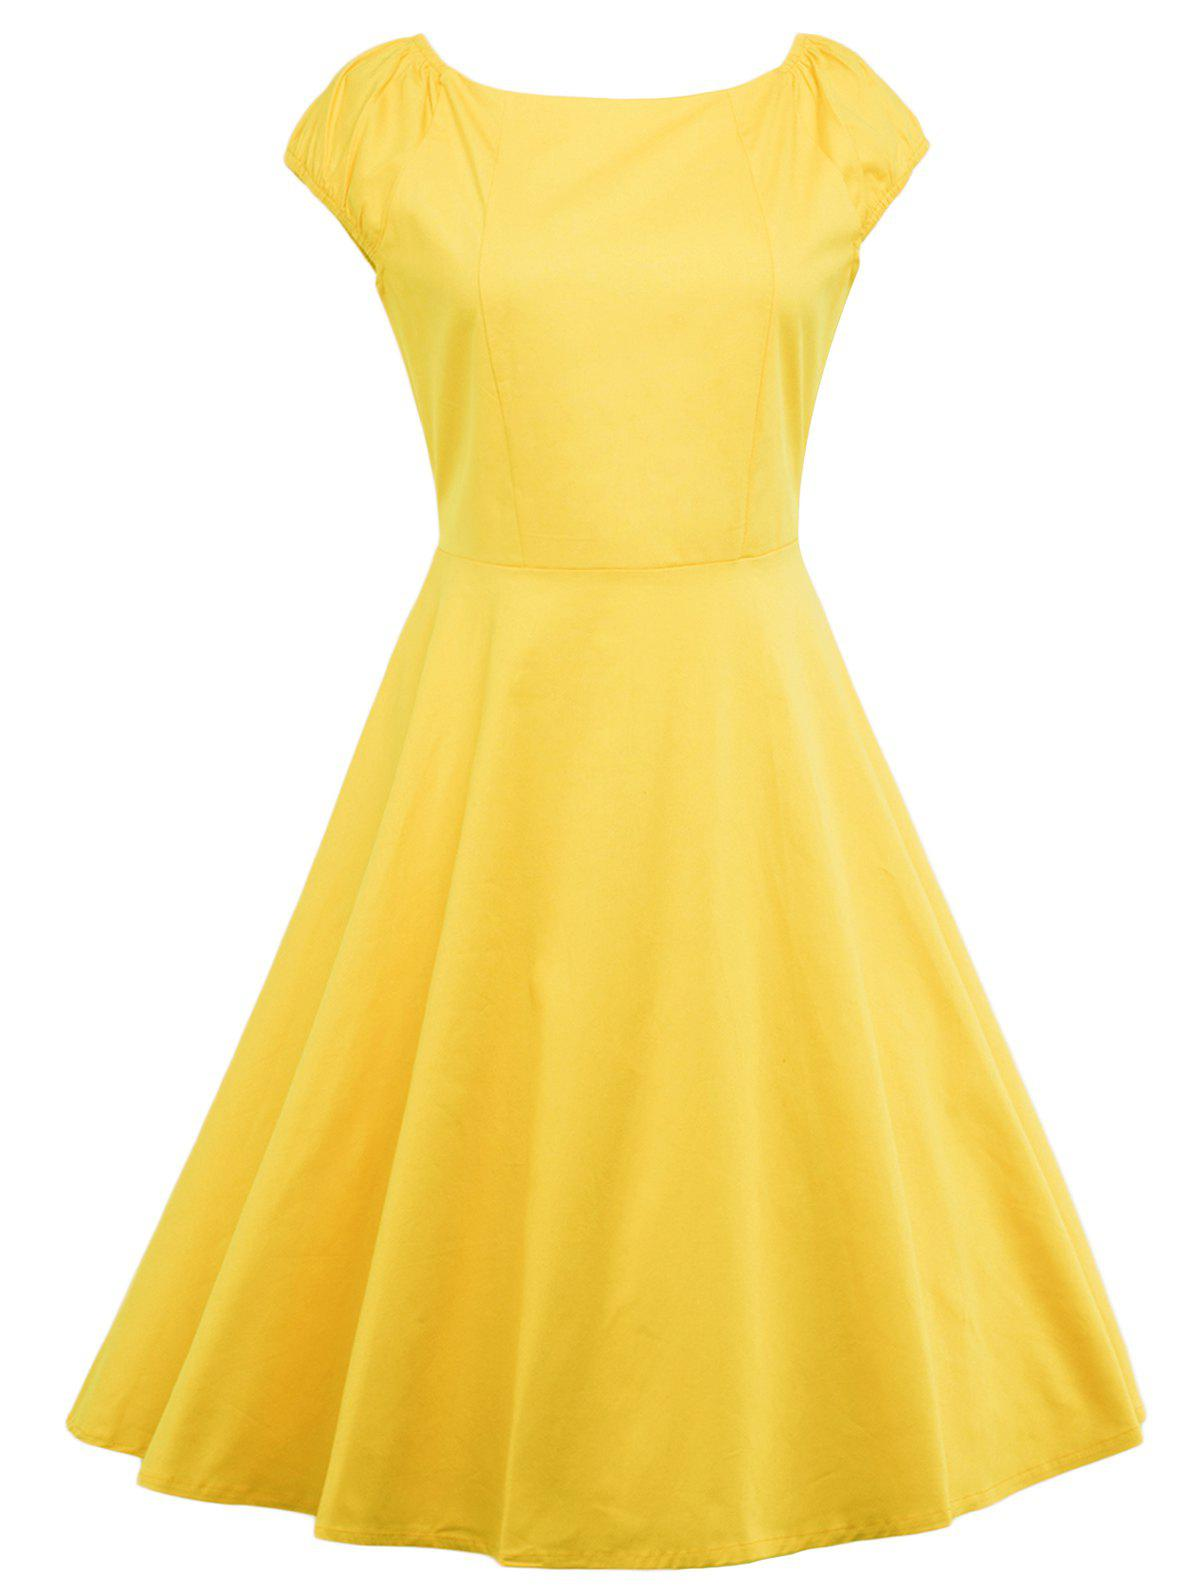 A Line Puffer Cap Sleep Prom Dress Yellow L In Vintage